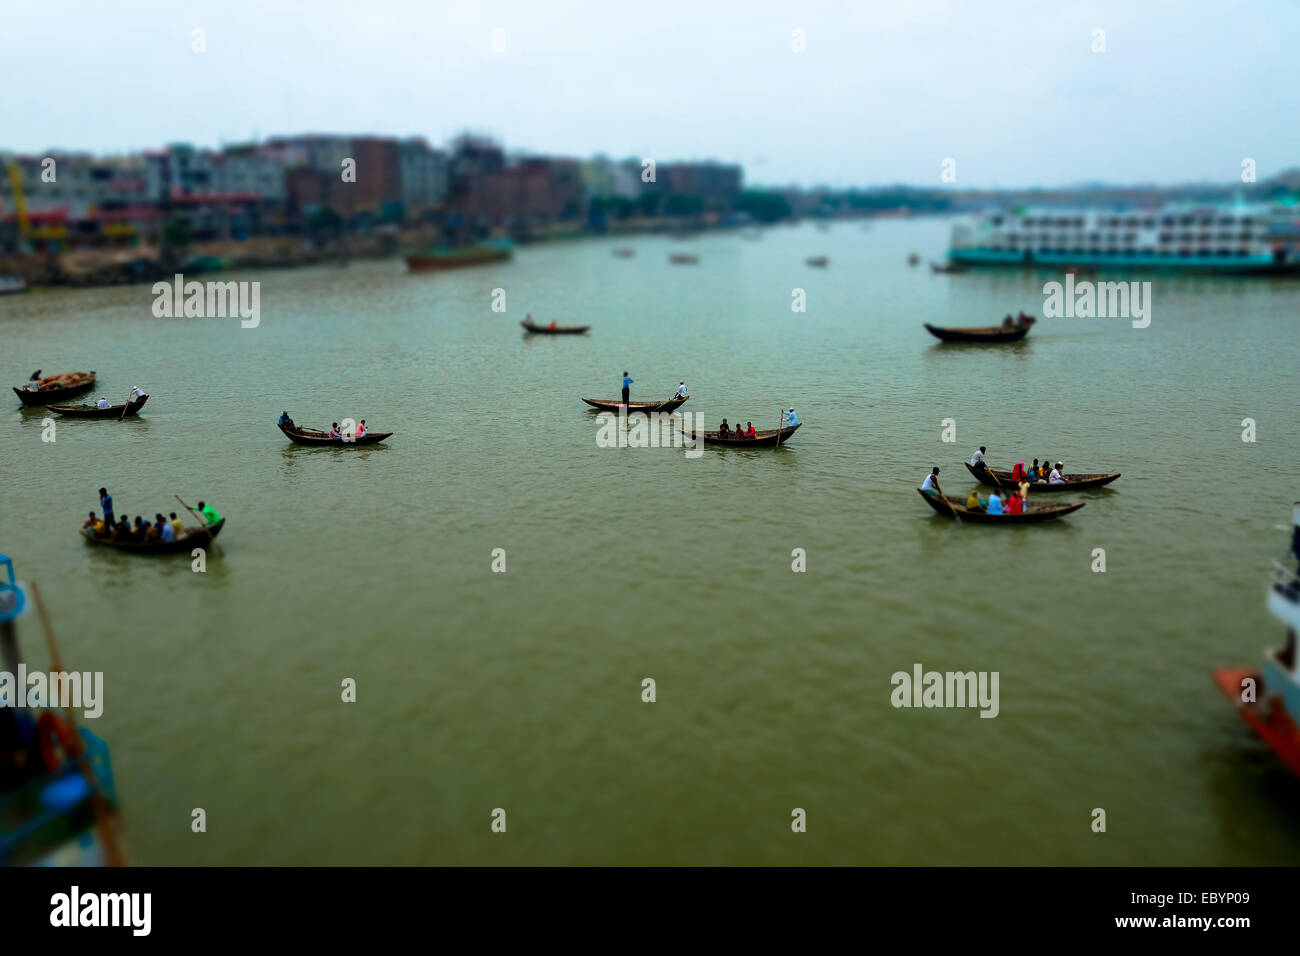 ferrying passengers across the port in dhaka, bangladesh - Stock Image